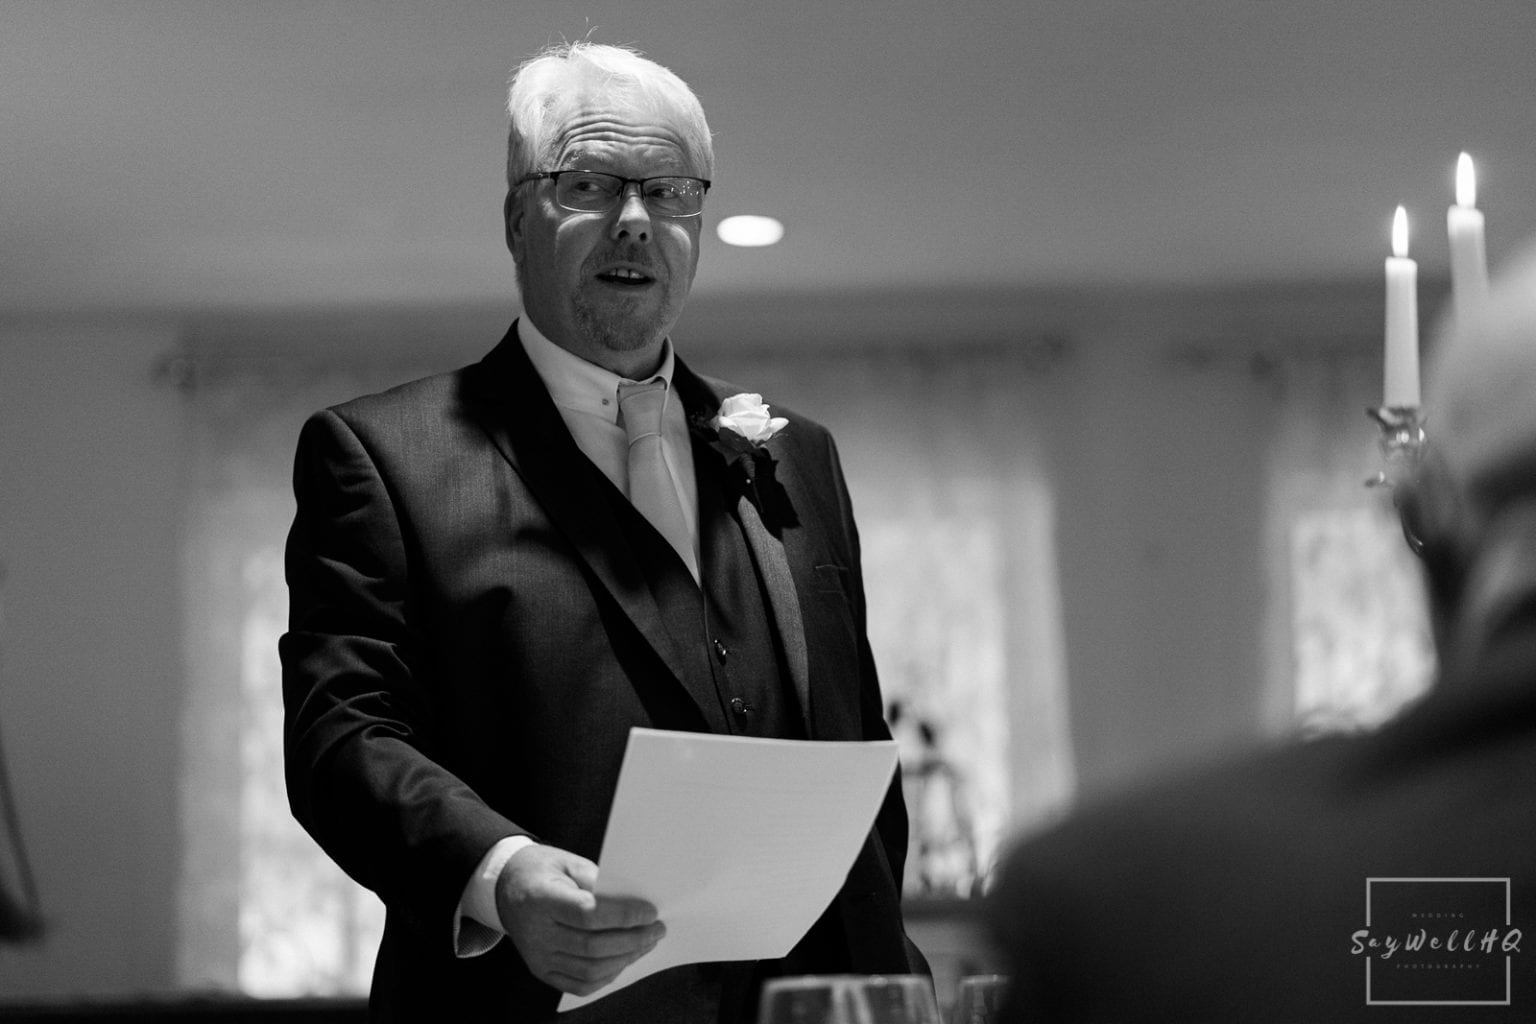 Woodborough Hall Wedding Photography + wedding guests enjoy the wedding speeches with the father of the bride and the best mans speeches